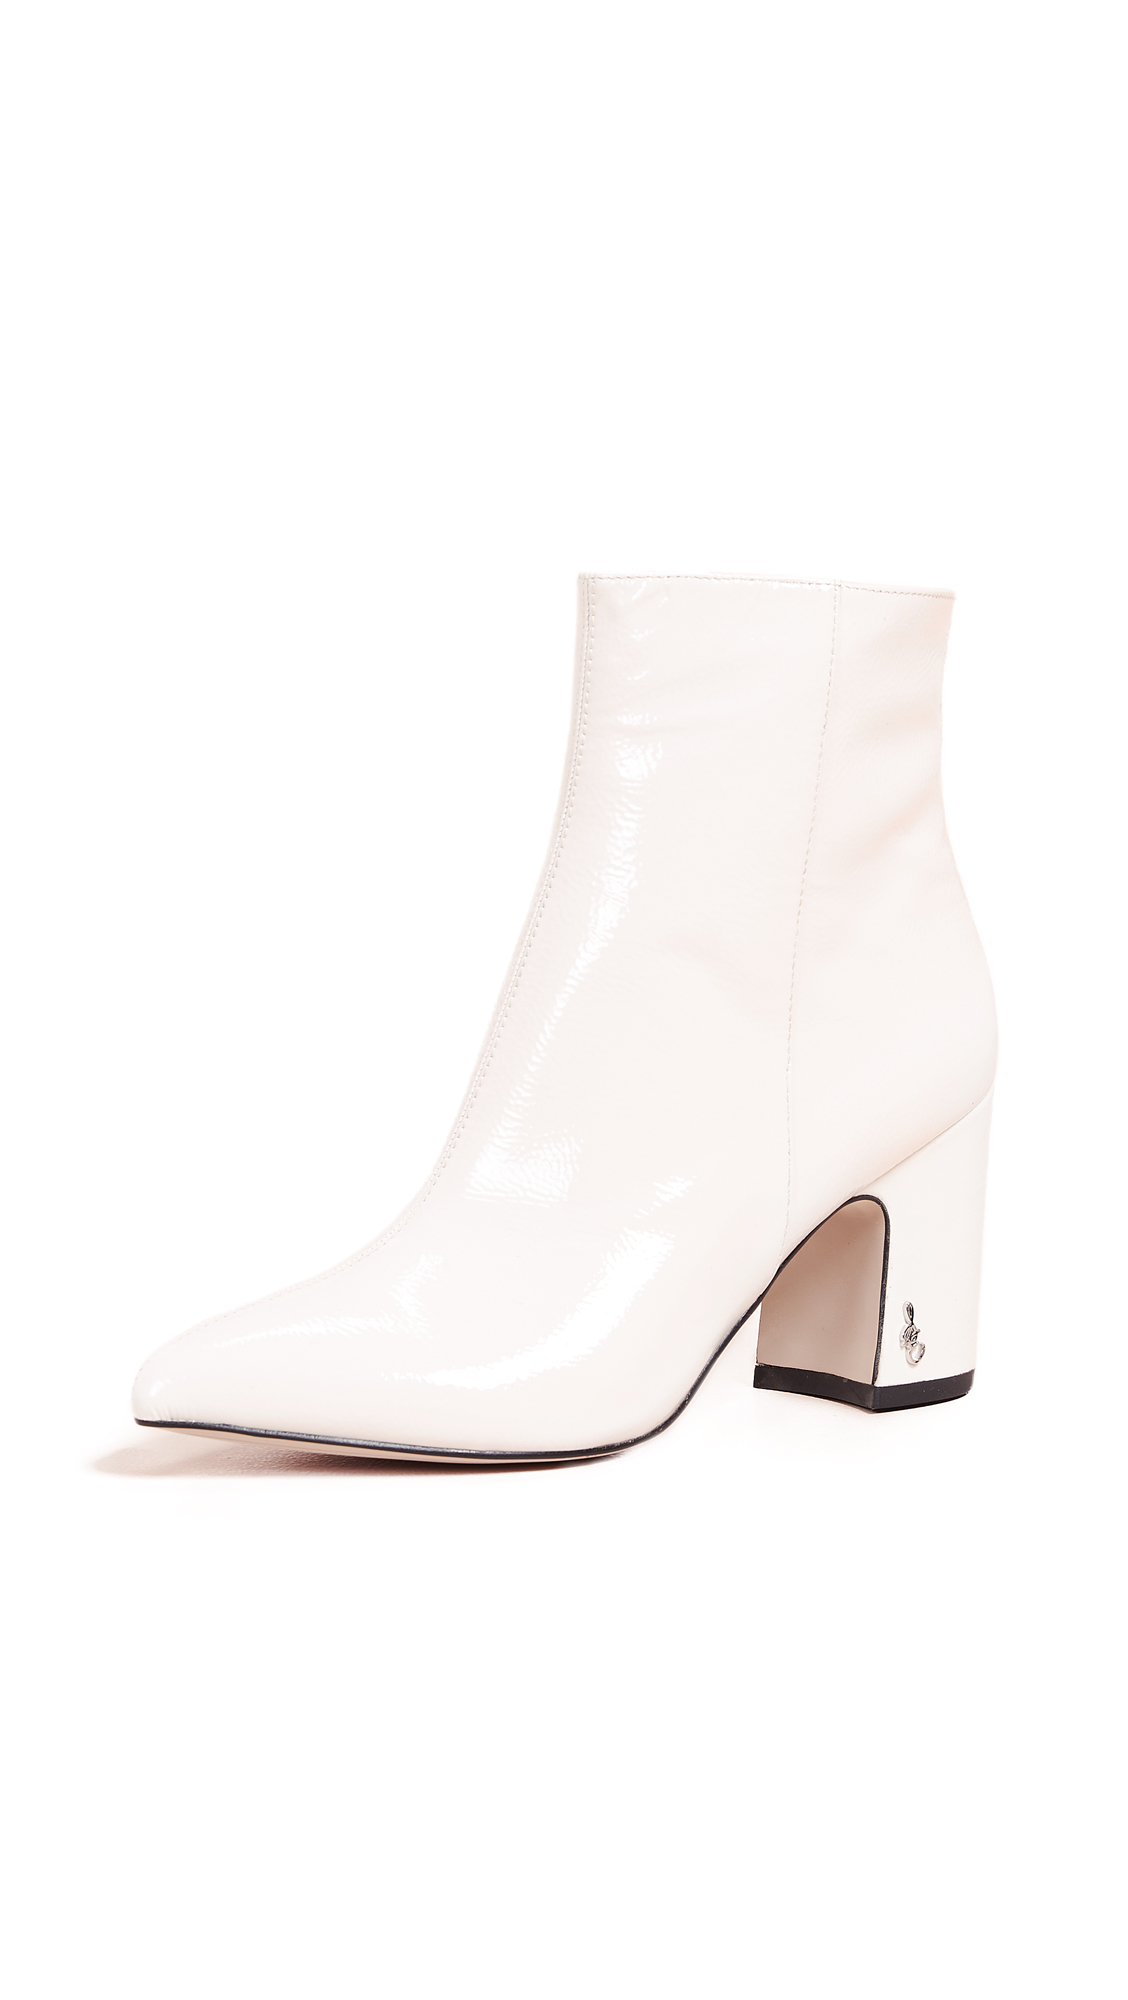 Sam Edelman Hilty Booties - Bright White